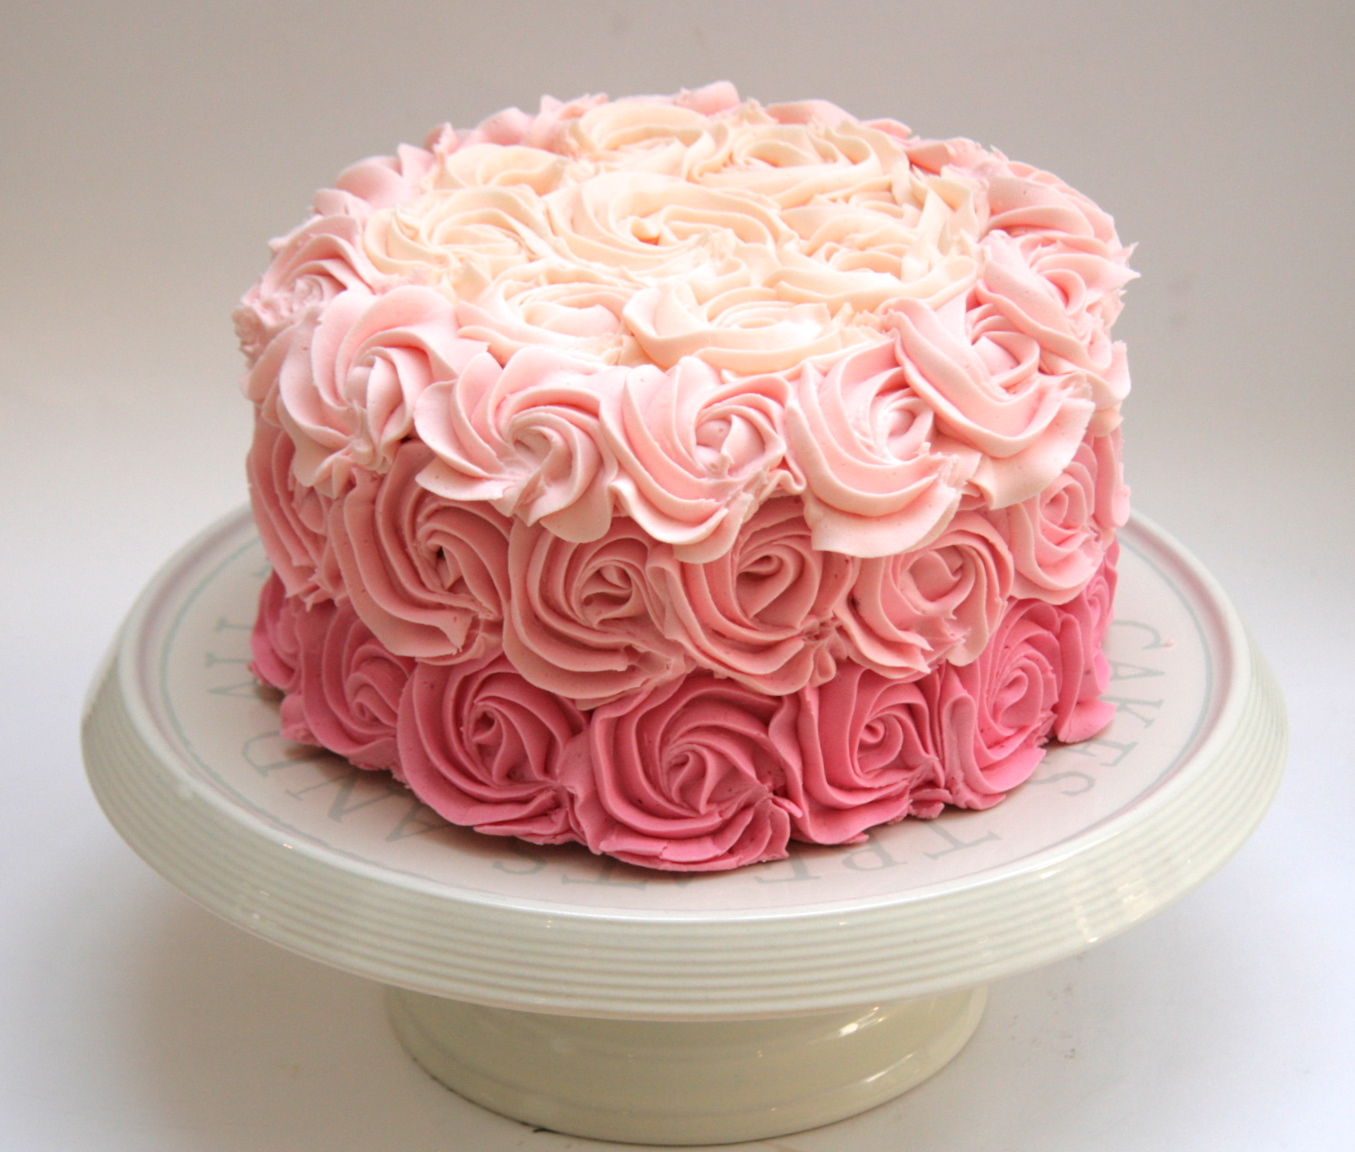 Rose Day Cake Images : Buttercream Rose cake Etoile Bakery